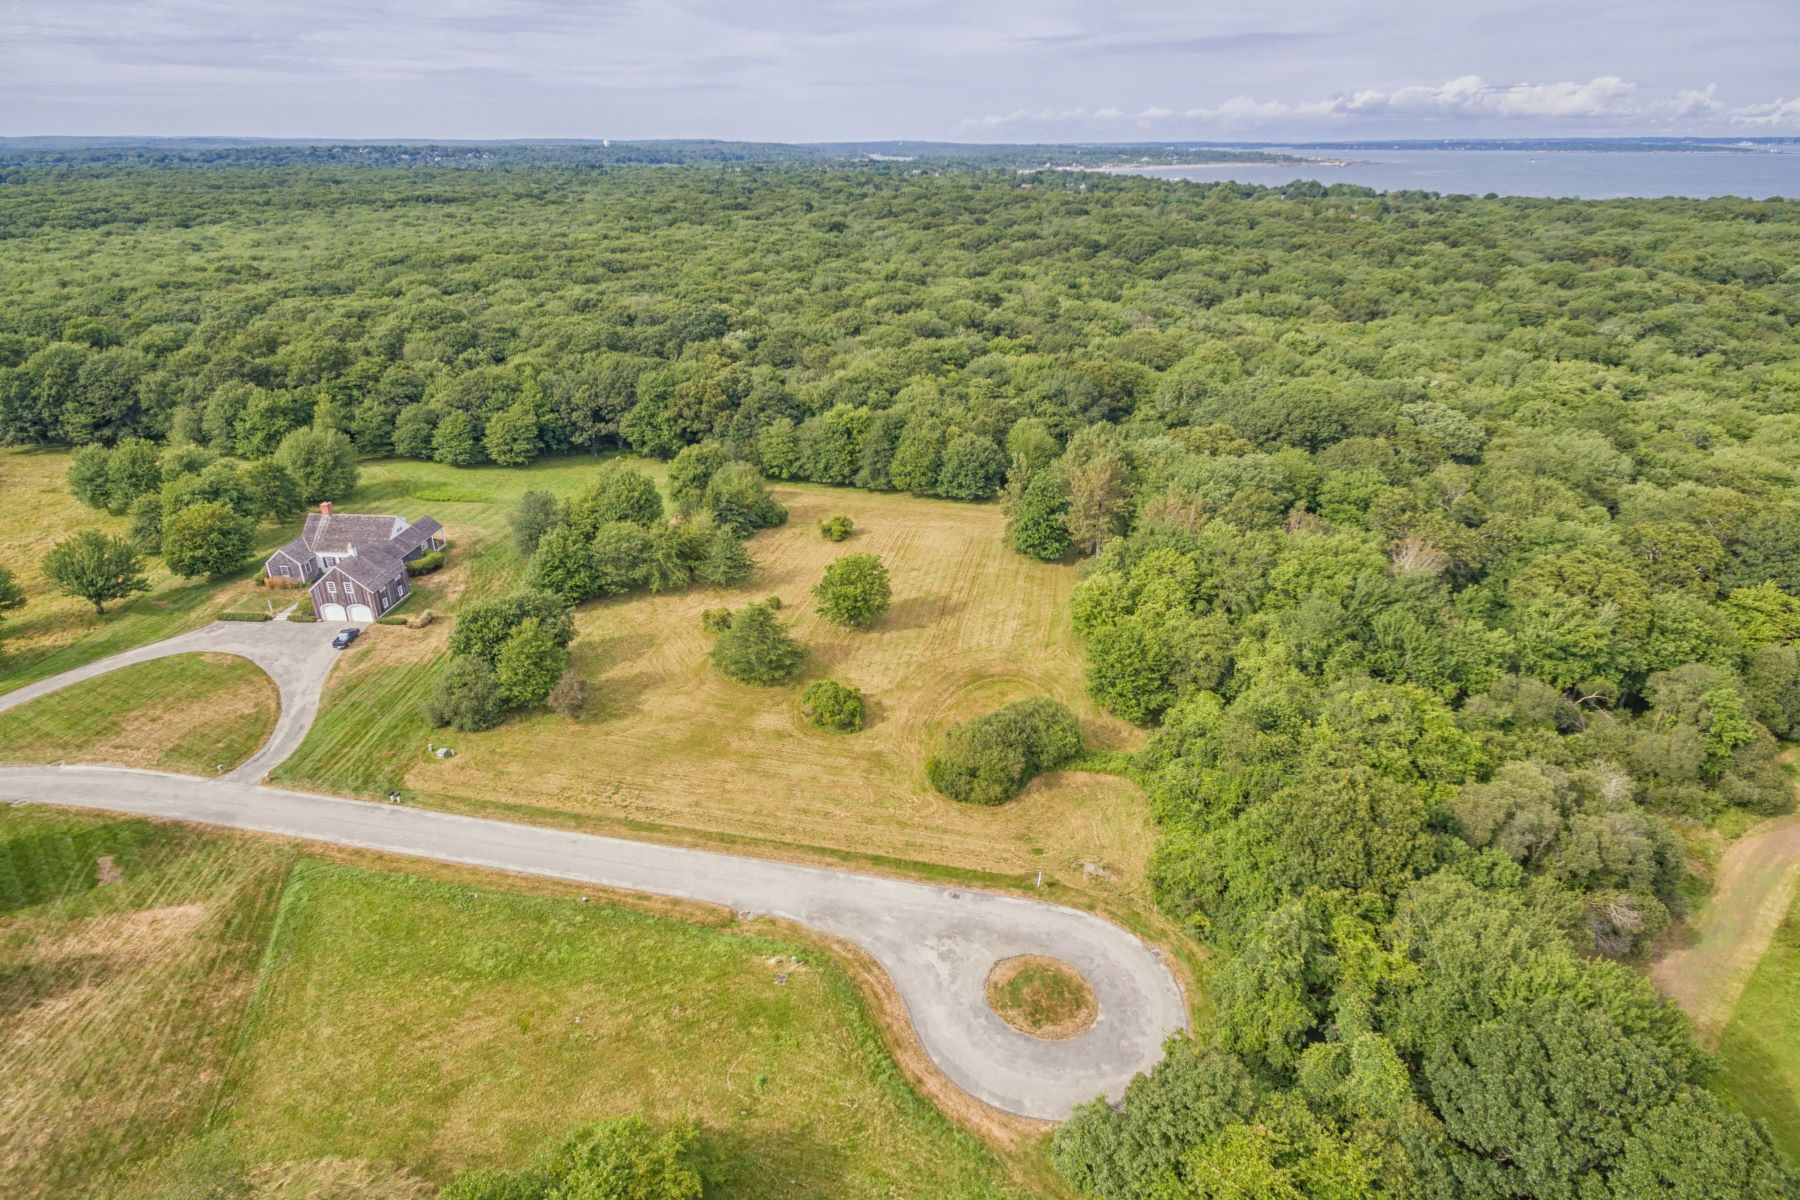 Land for Sale at 0 Clubhouse Dr, Narragansett, RI Narragansett, Rhode Island 02882 United States